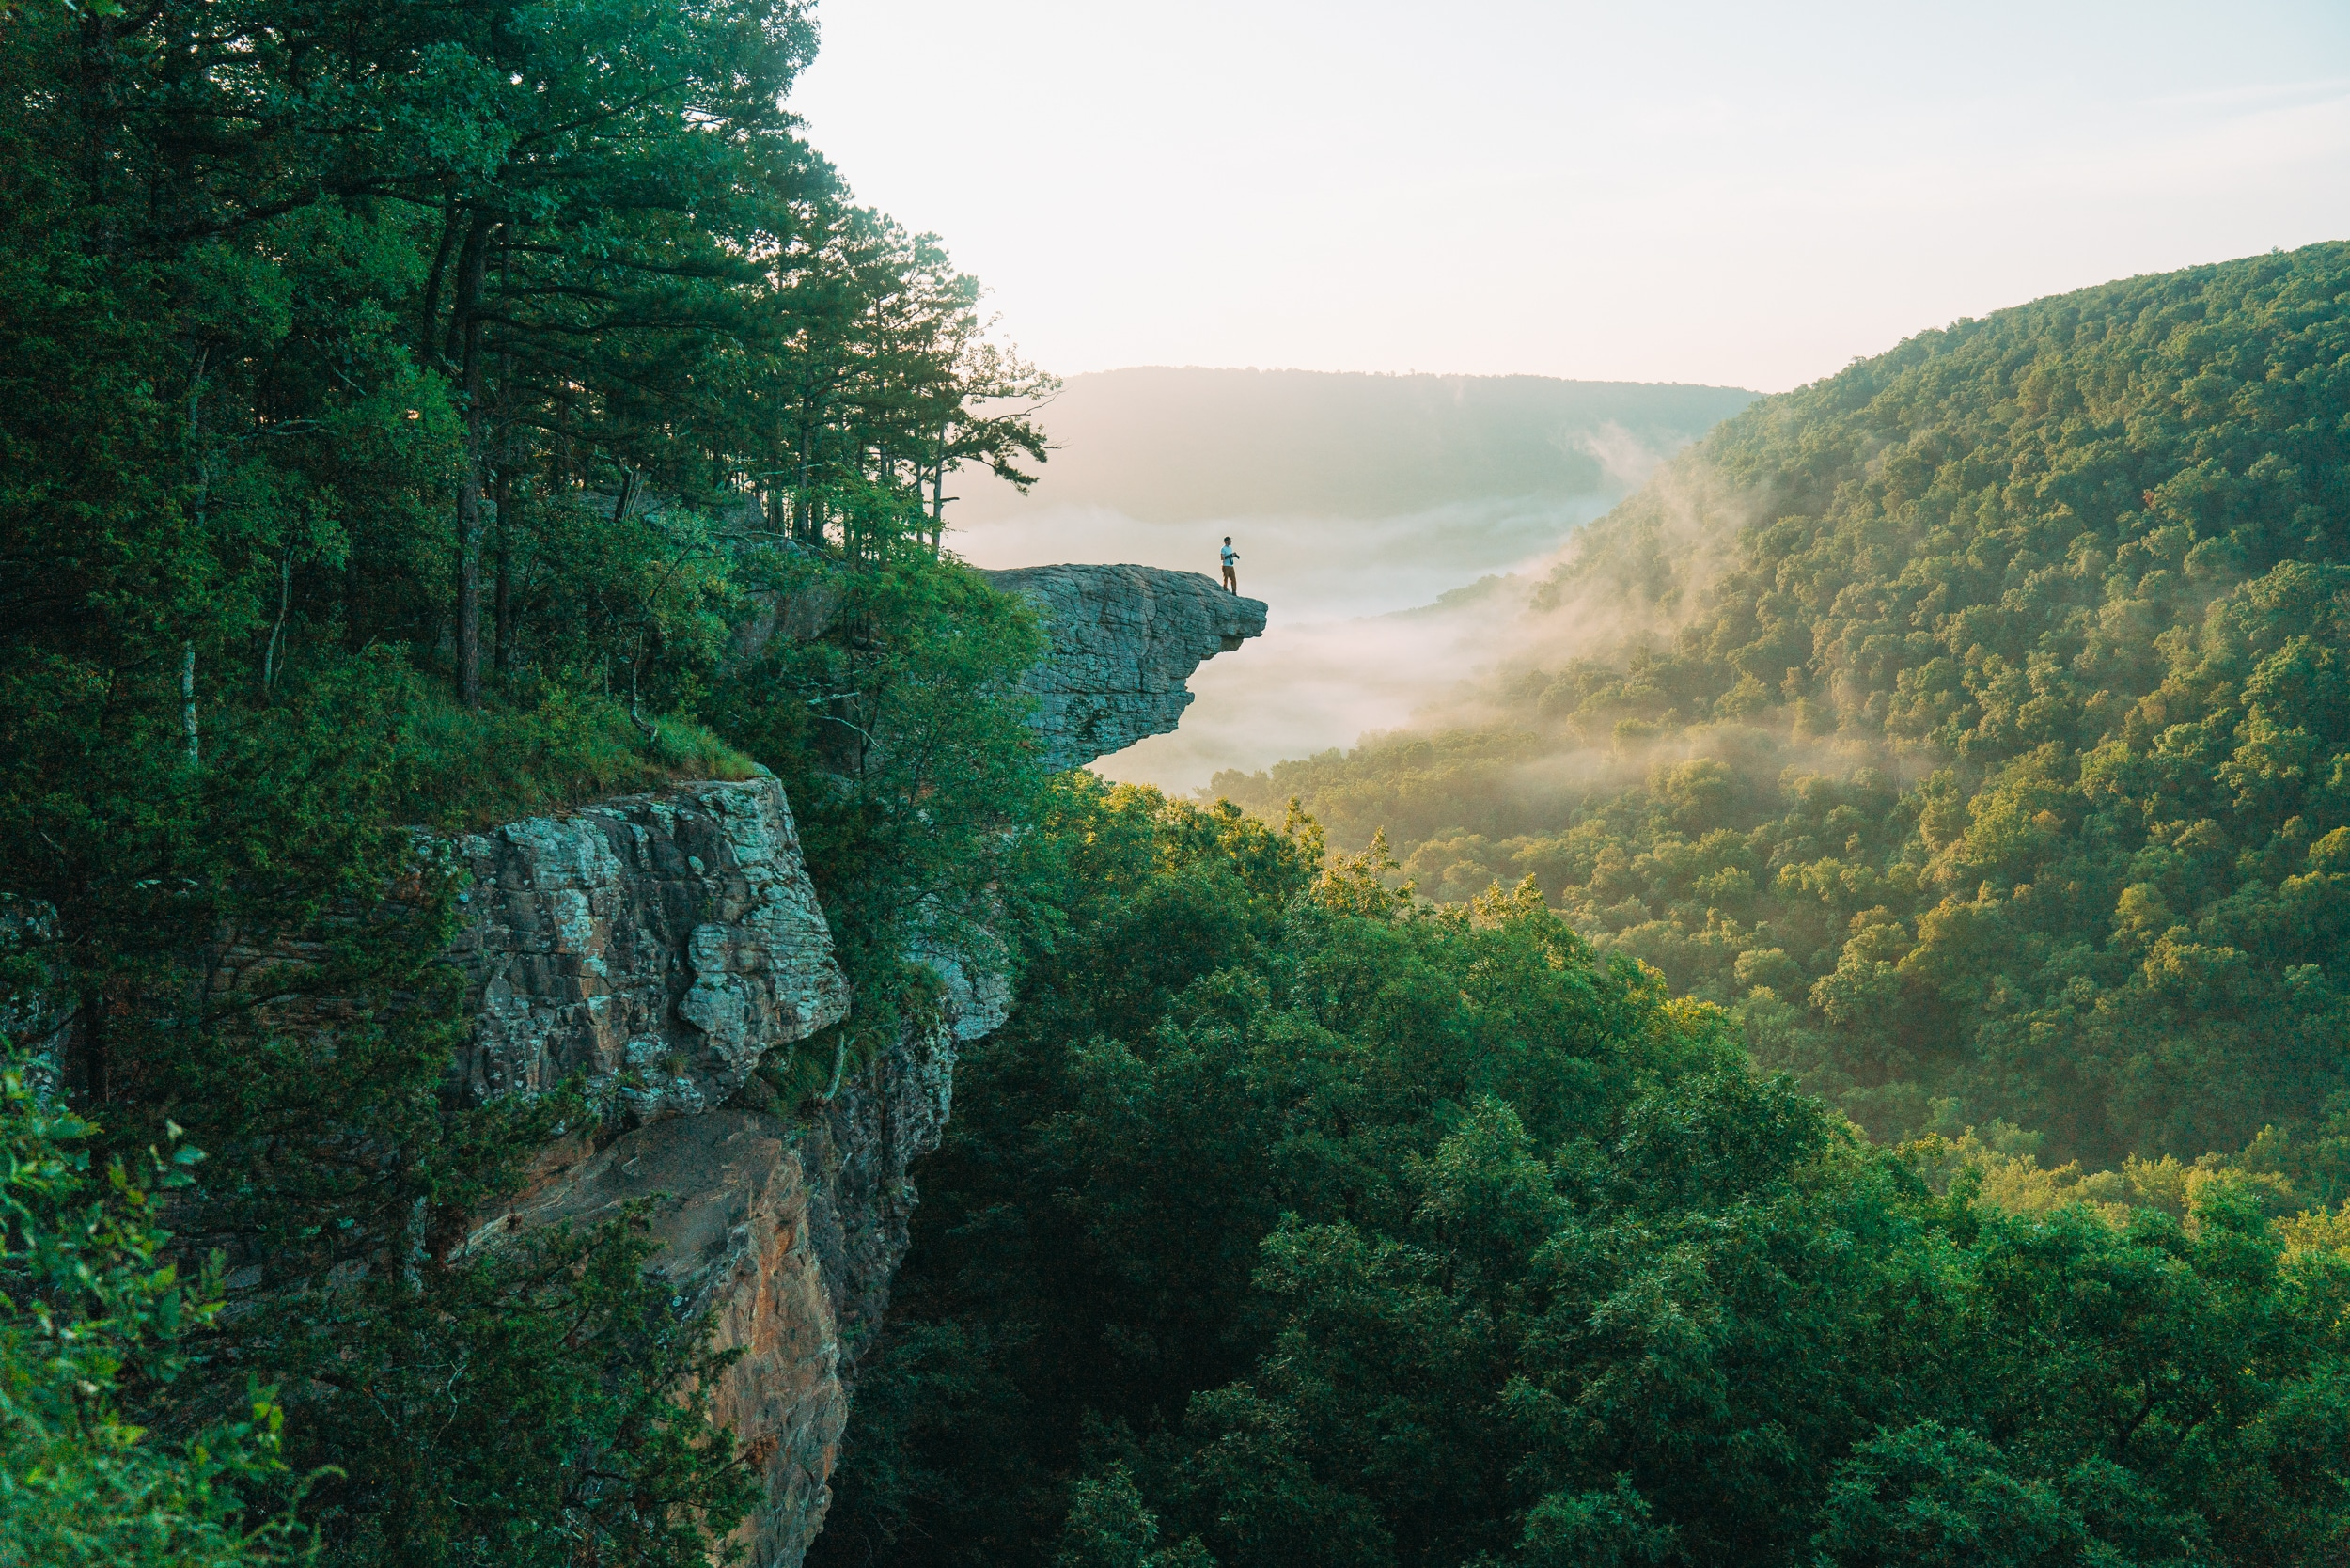 Hike out to Whitaker Point in AZ